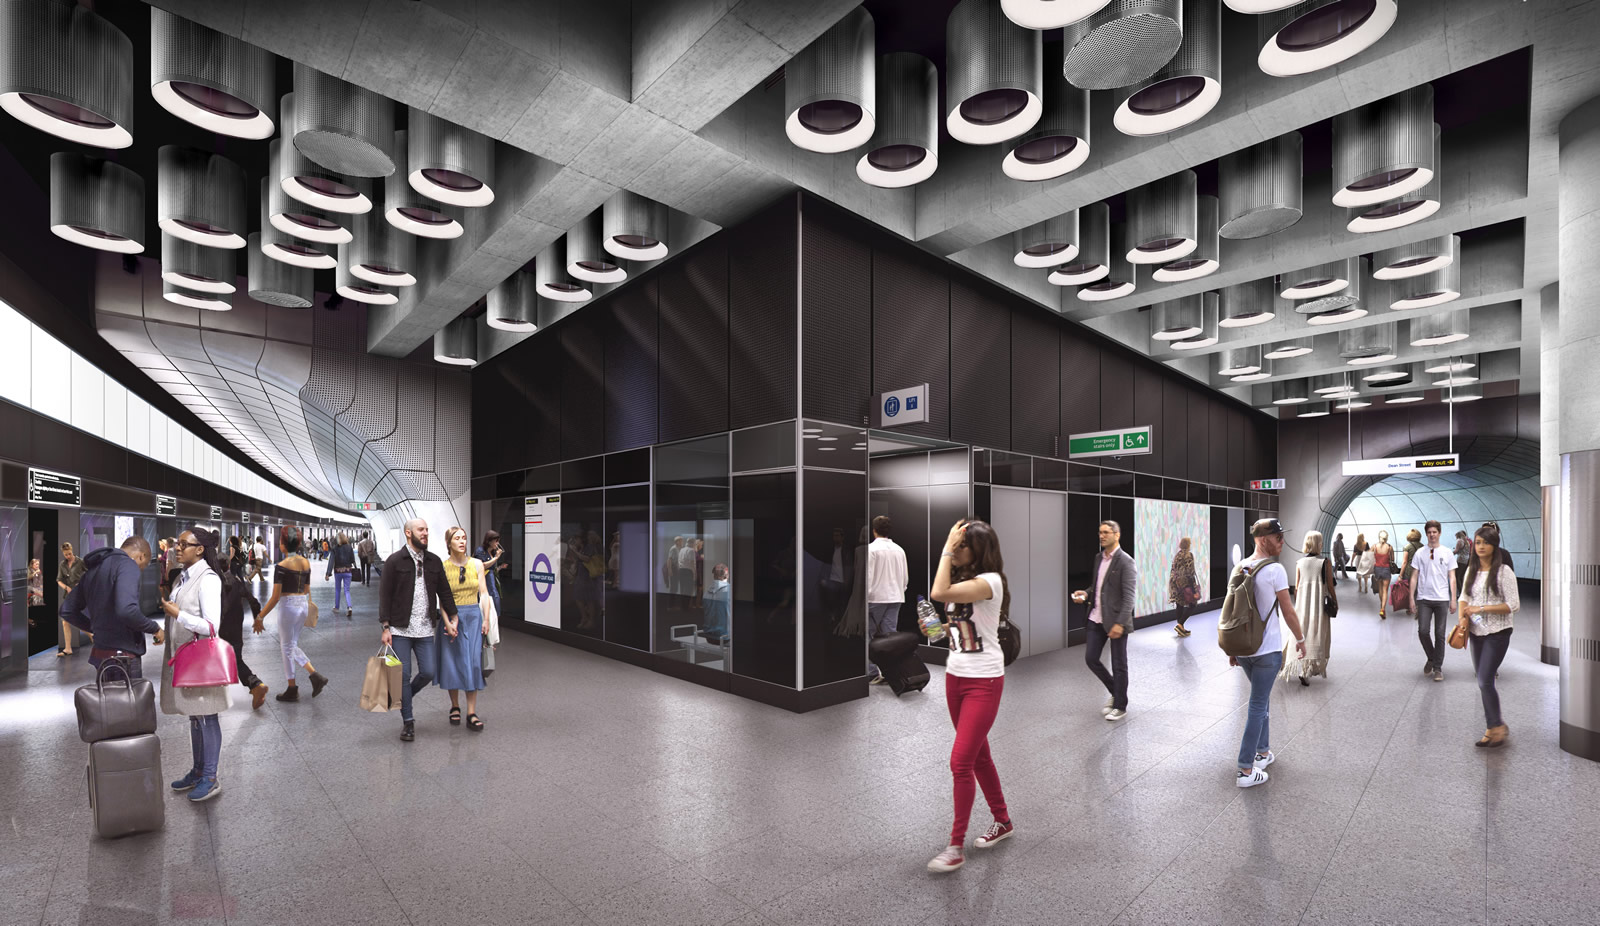 03 Tottenham Court Road station - proposed platform level at Dean Street entrance_236020